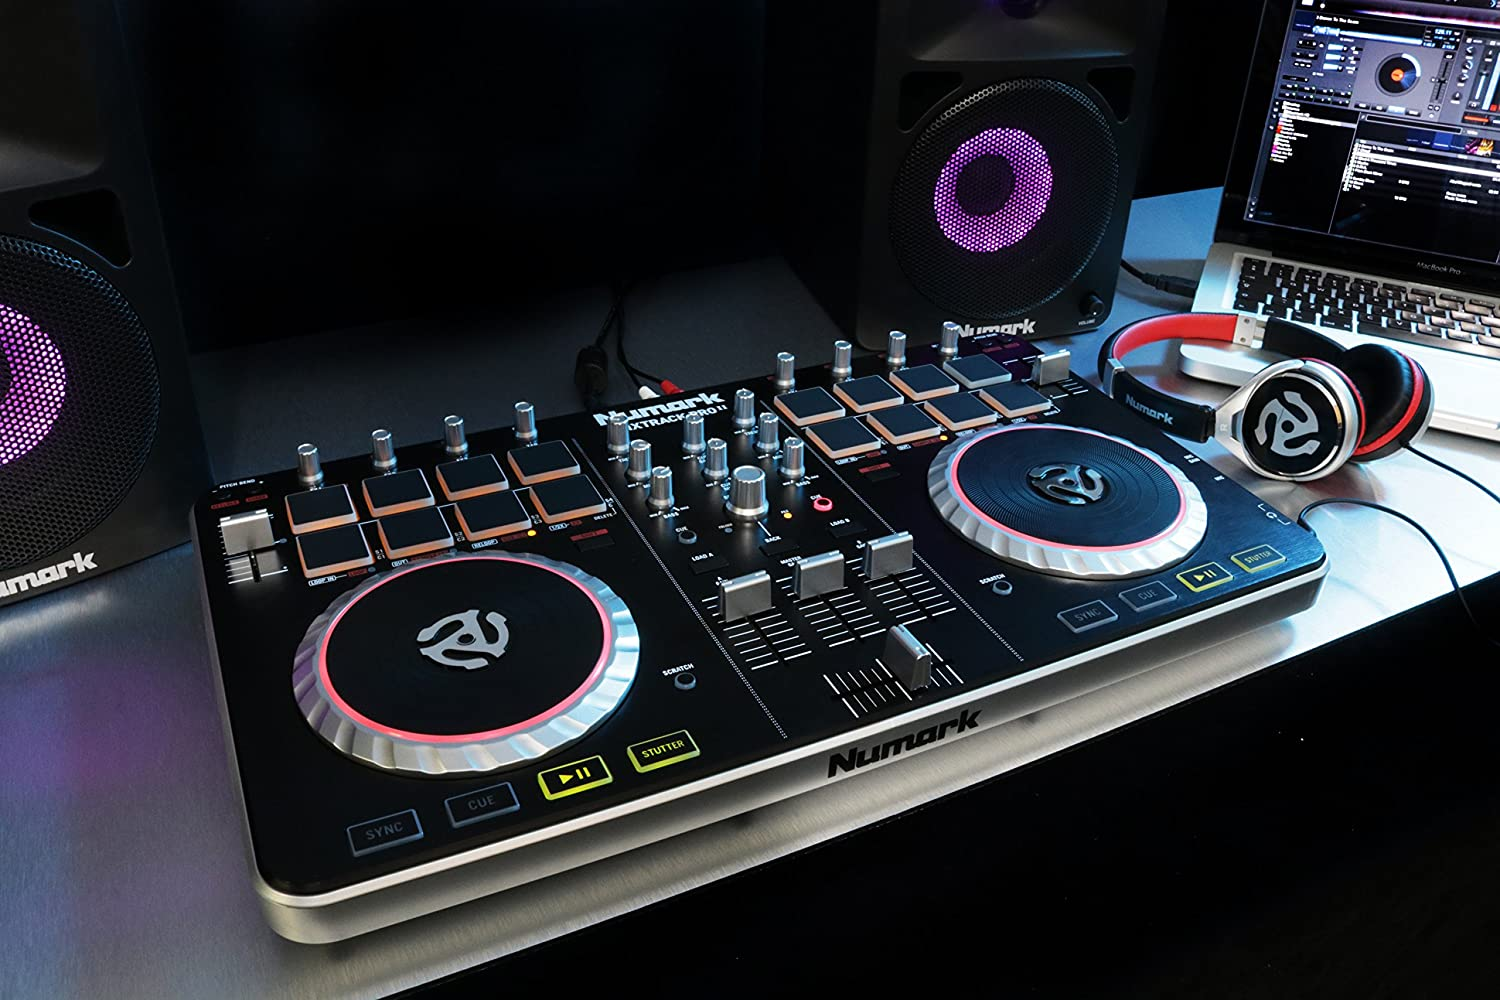 numark mixtrack pro ii usb dj controller with integrated audio interface and trigger pads. Black Bedroom Furniture Sets. Home Design Ideas